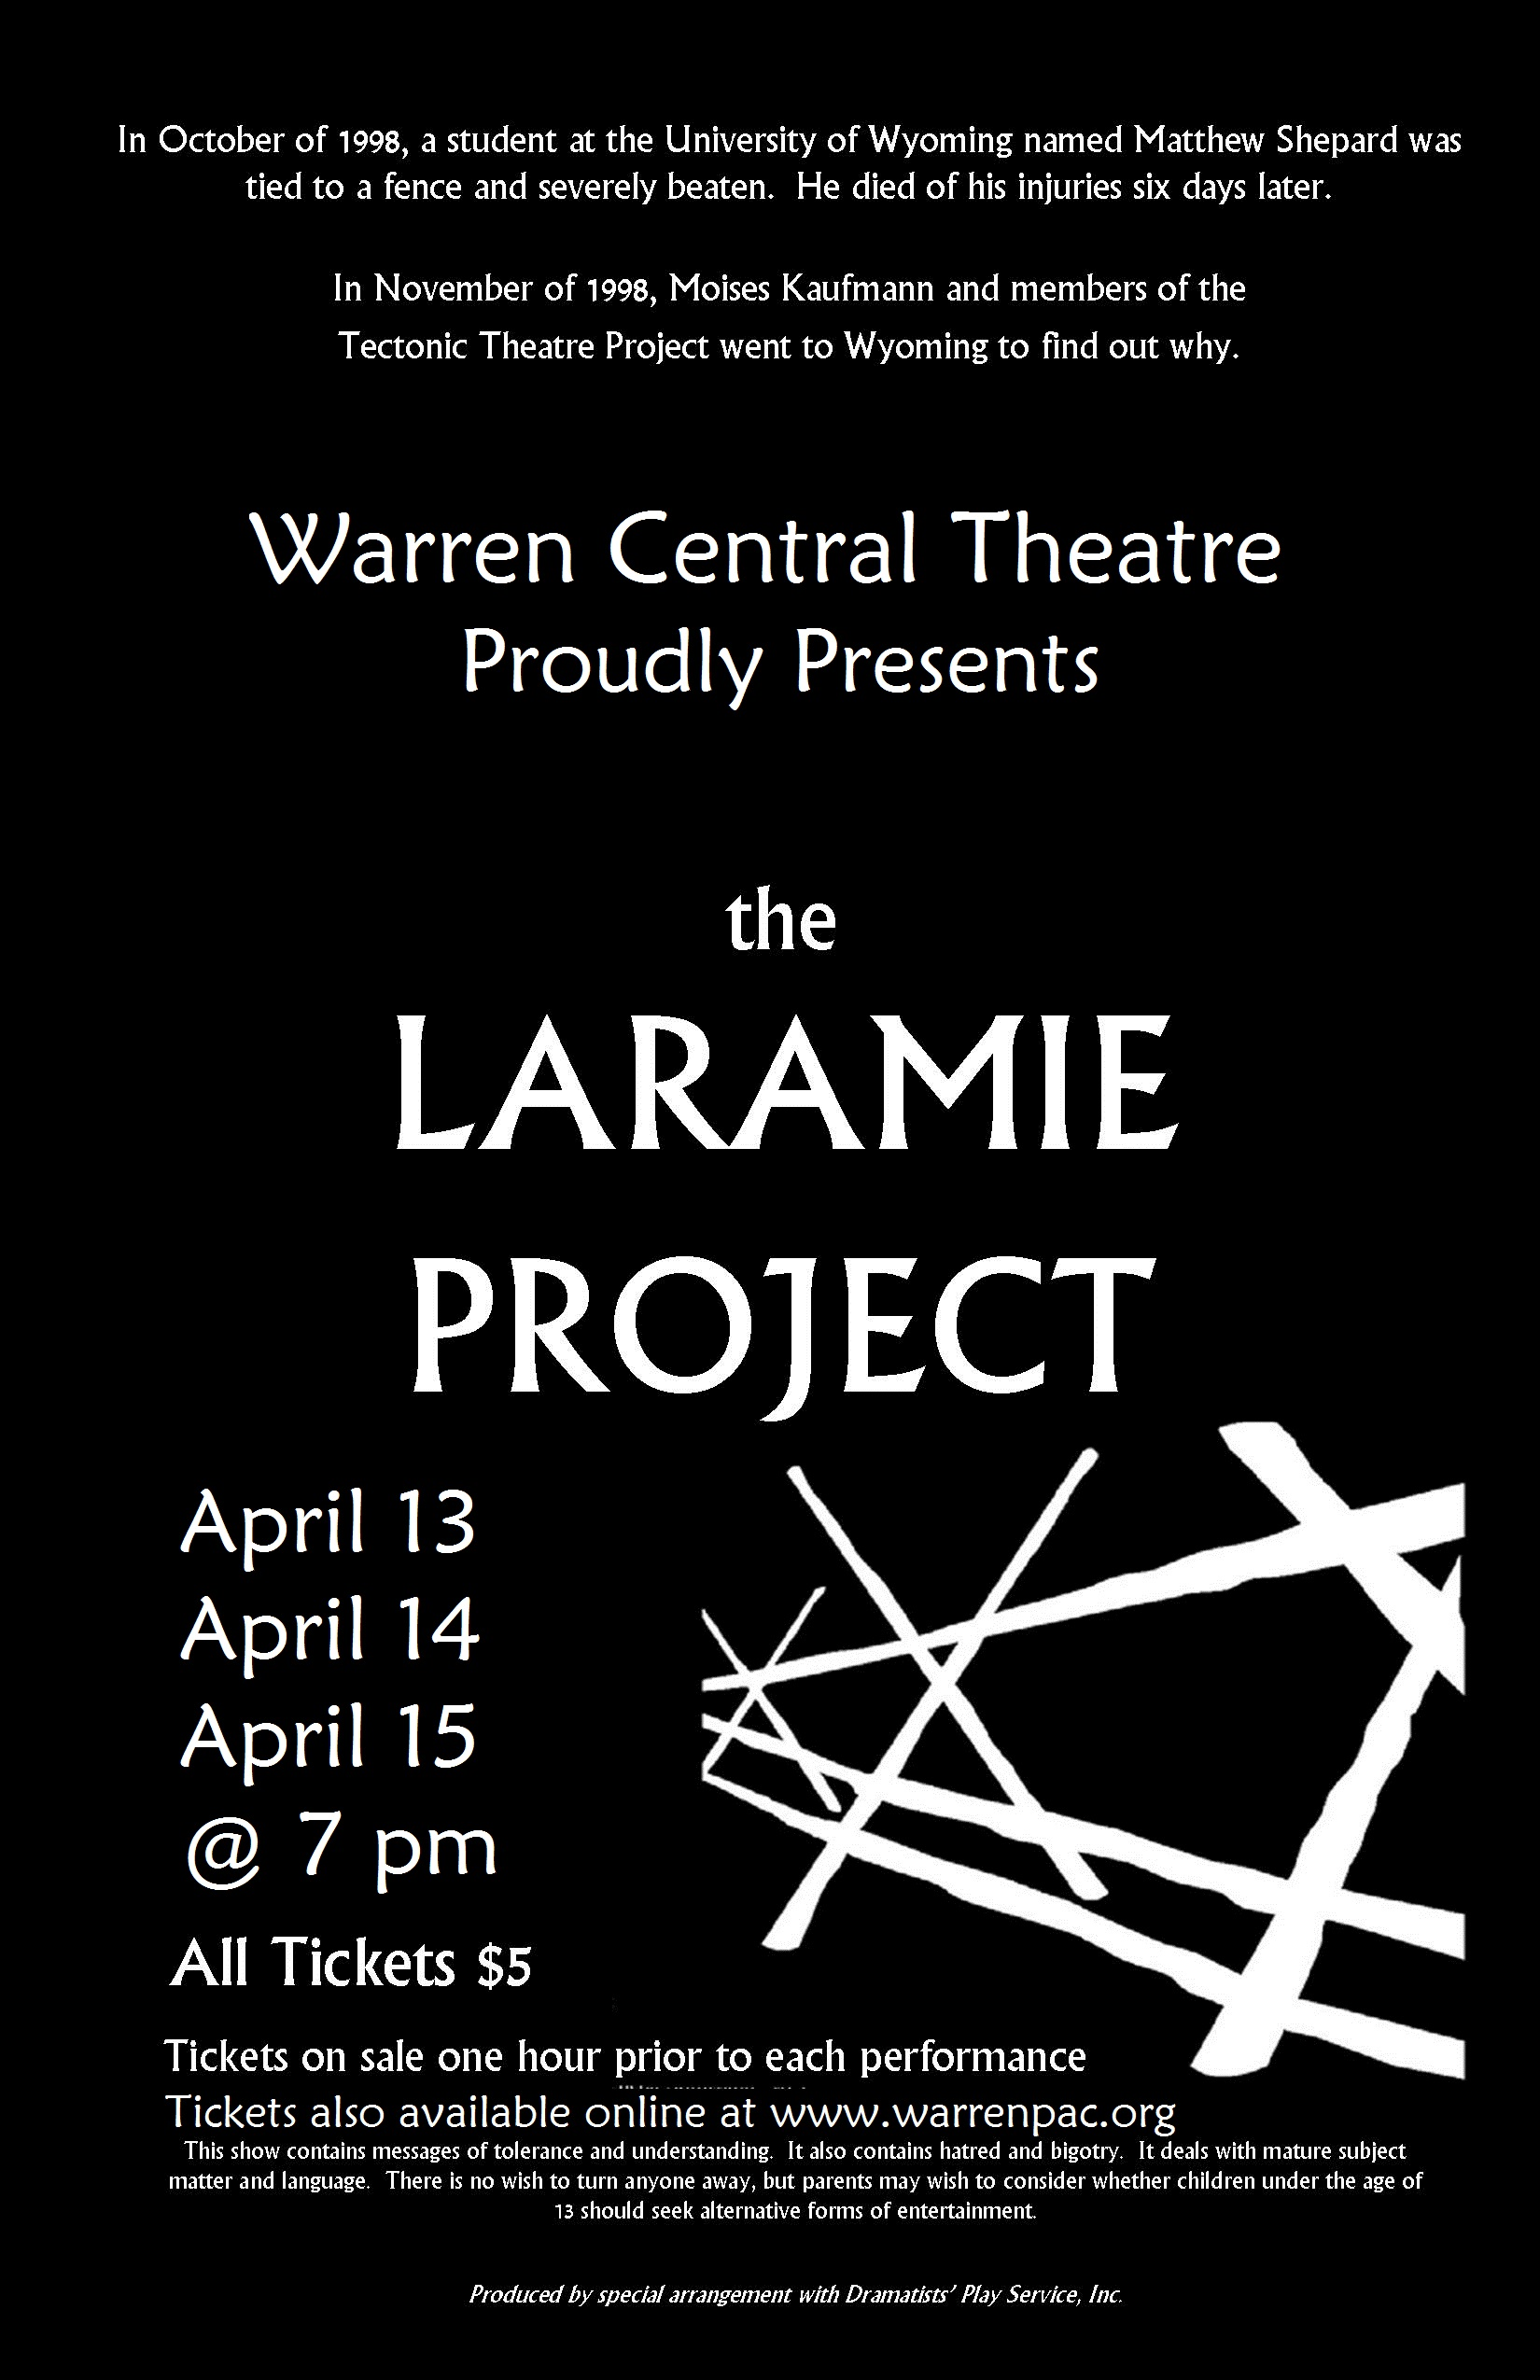 Warren Central Theatre presents The Laramie Project